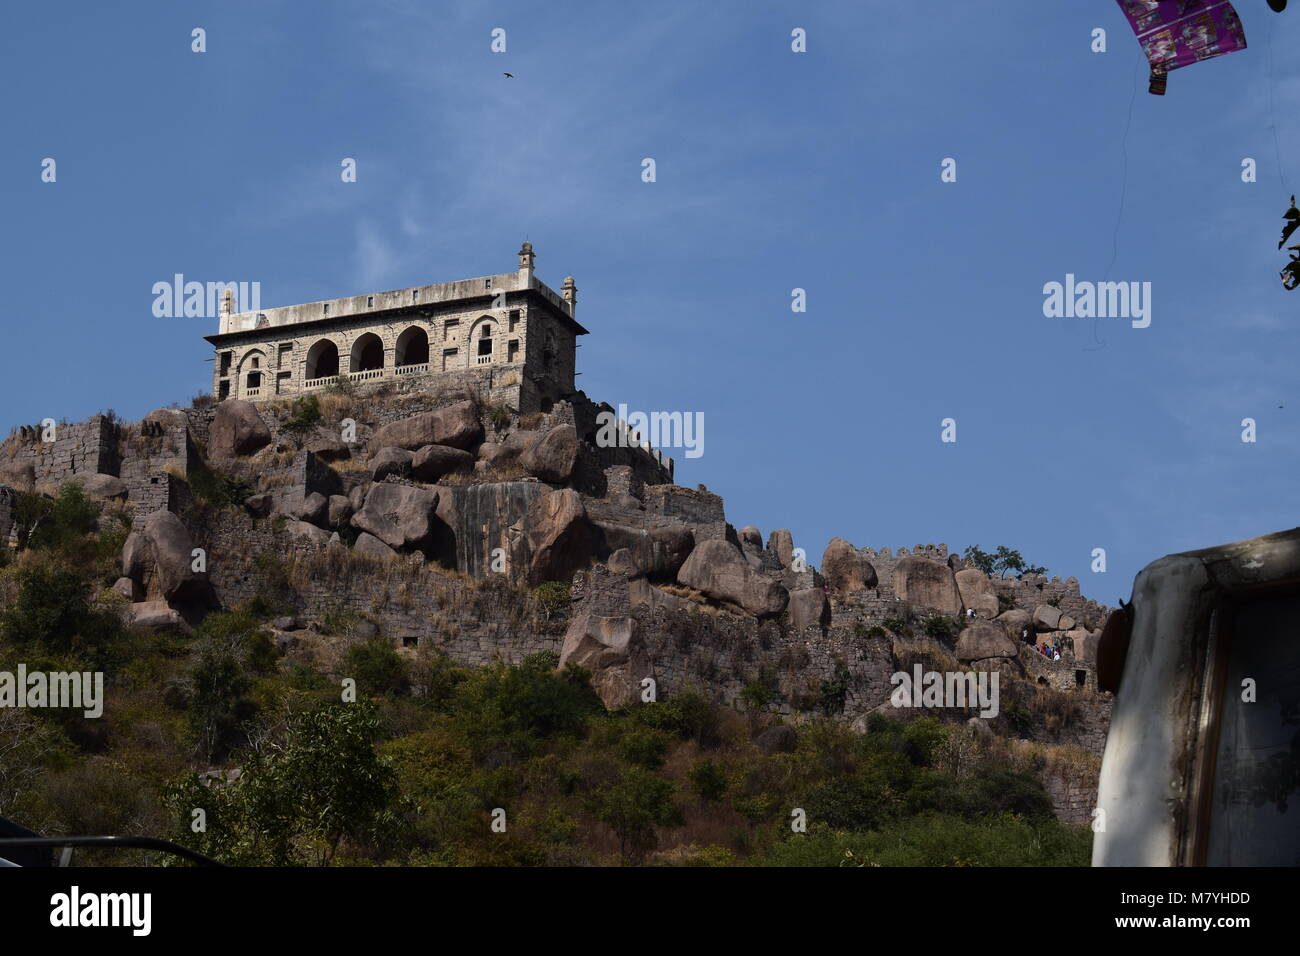 The topmost part of the golconda fort with the hill beneath it - Stock Image